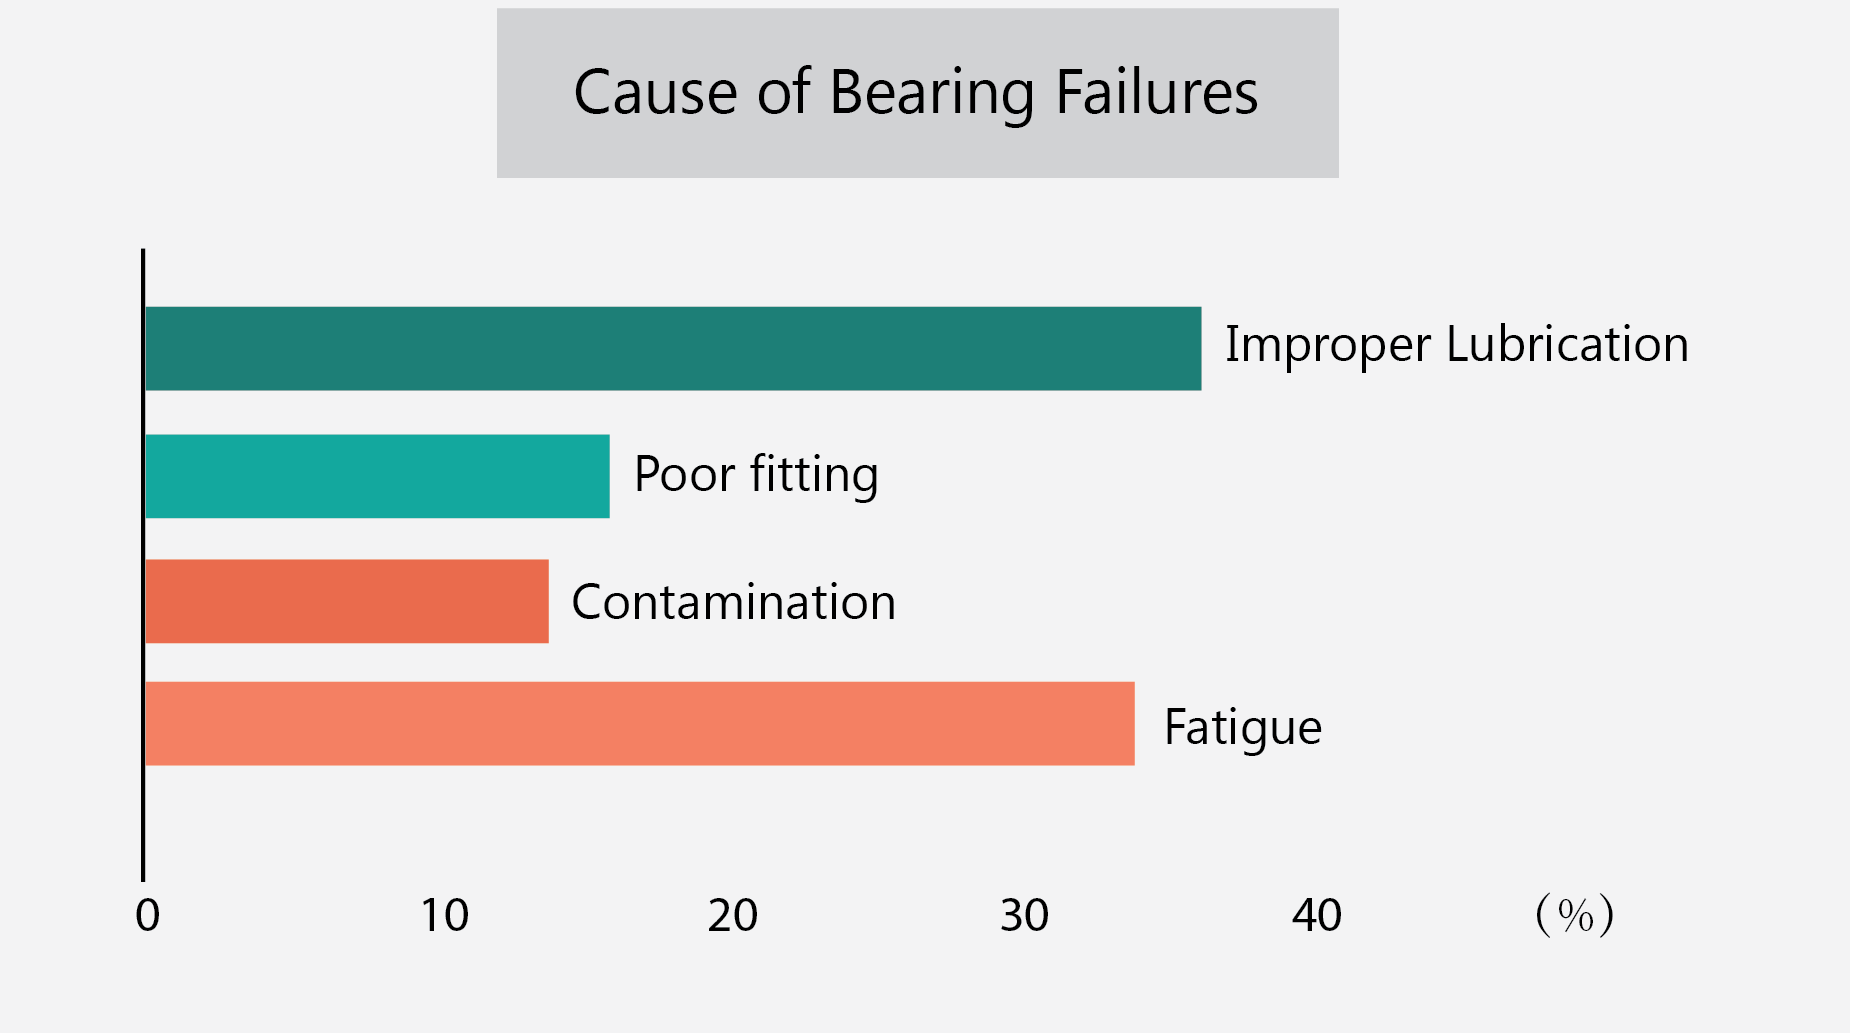 Image shows a table that features the different causes of bearing failures